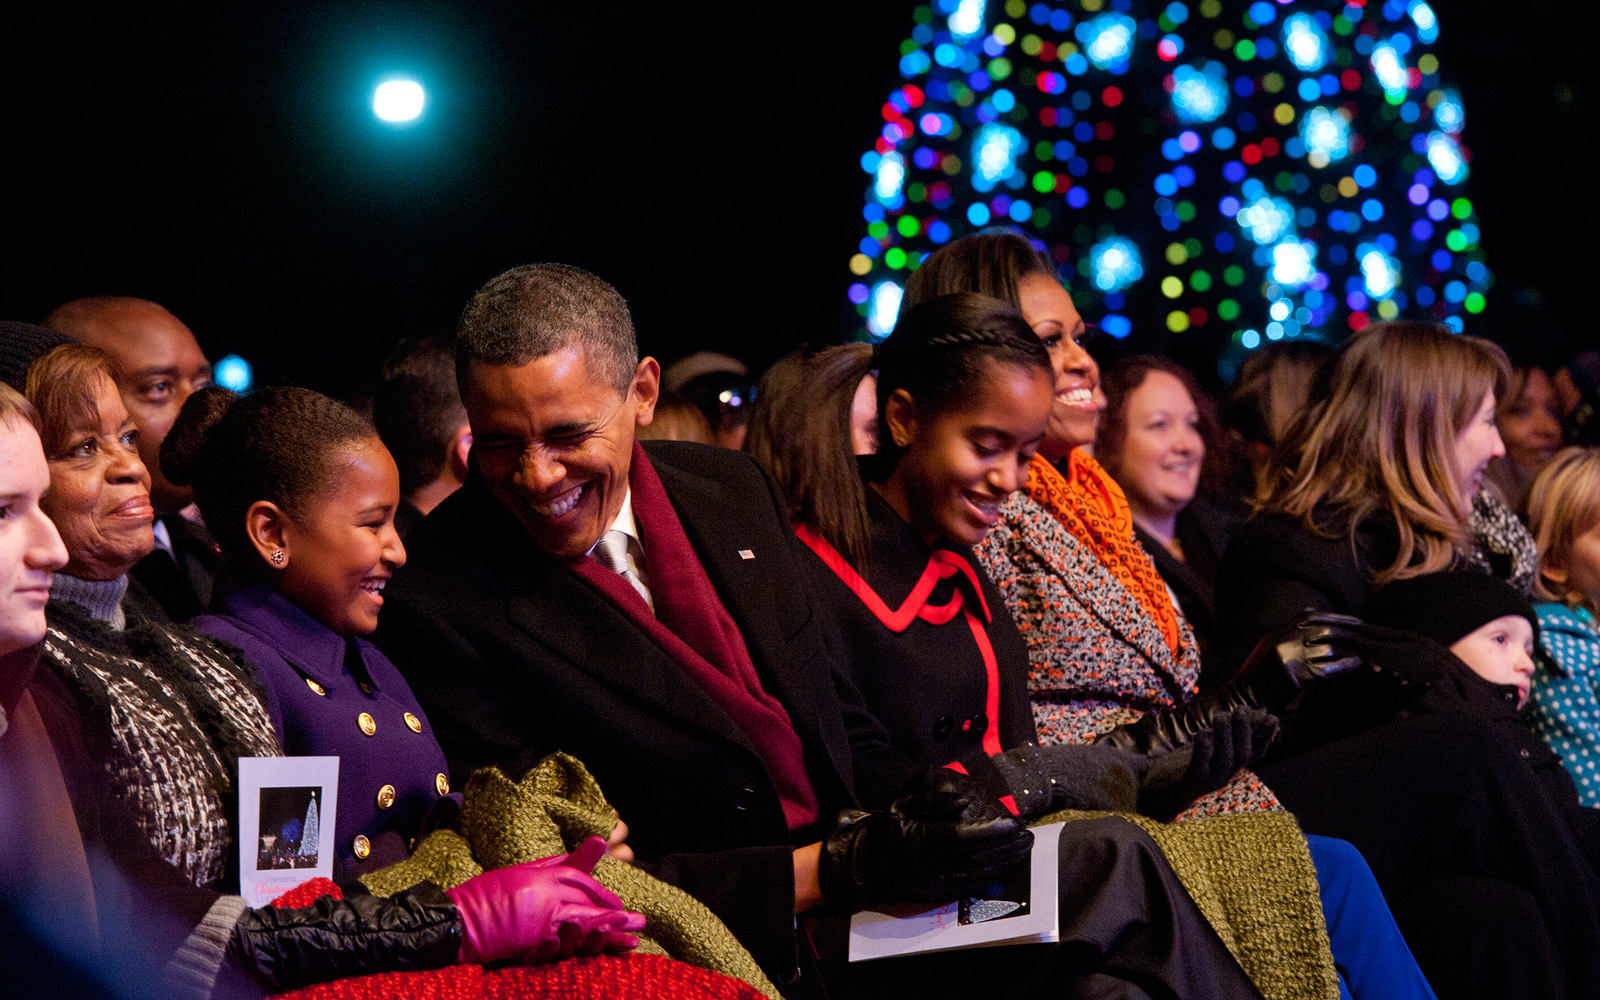 How To Get Tickets To The White House Tree Lighting